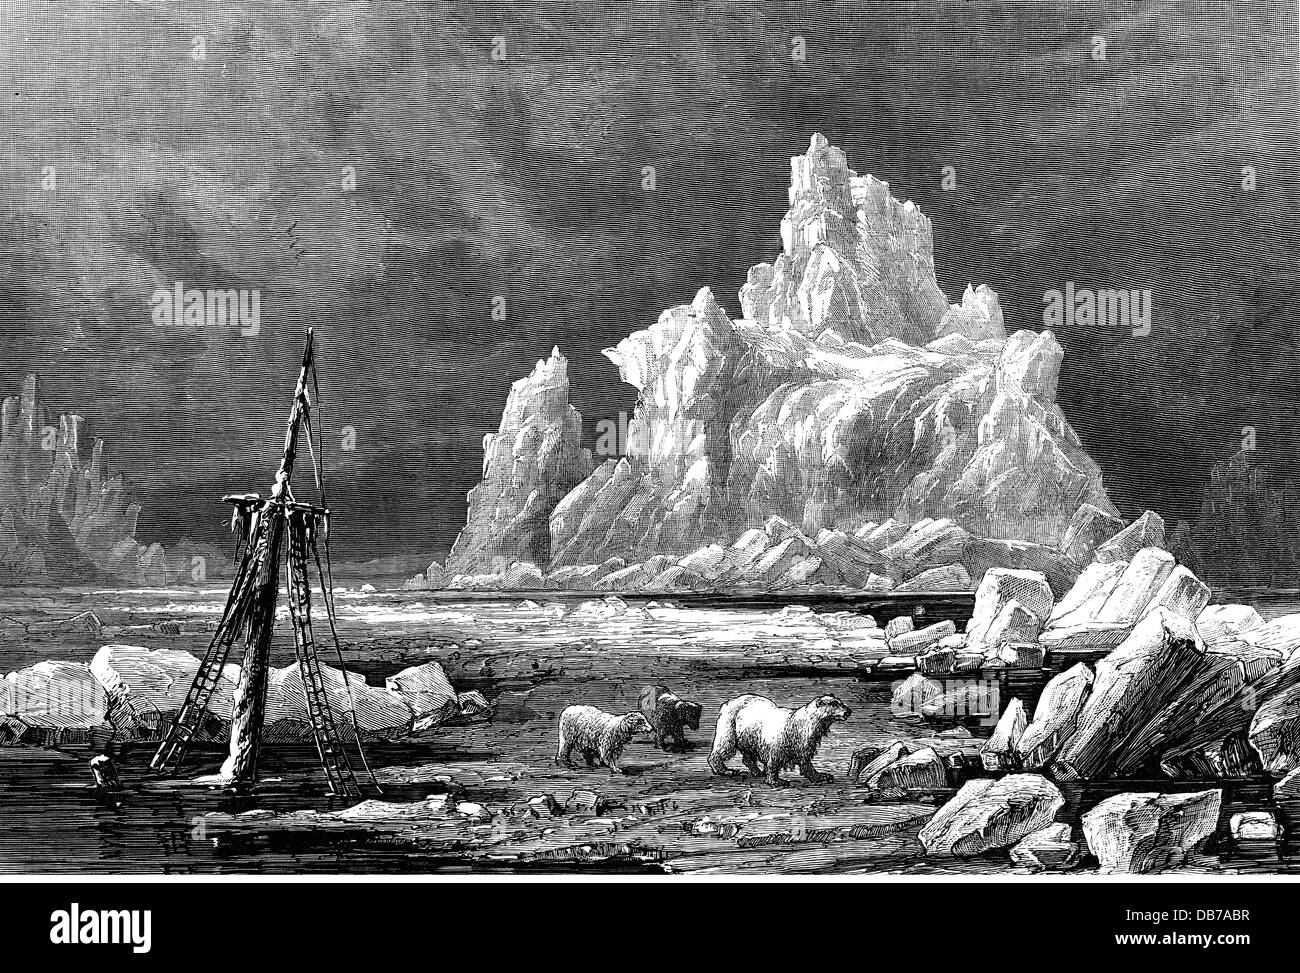 geography / travel, arctic, iceberg in the pack ice, polar sea near Greenland, wood engraving, 2nd half 19th century, - Stock Image